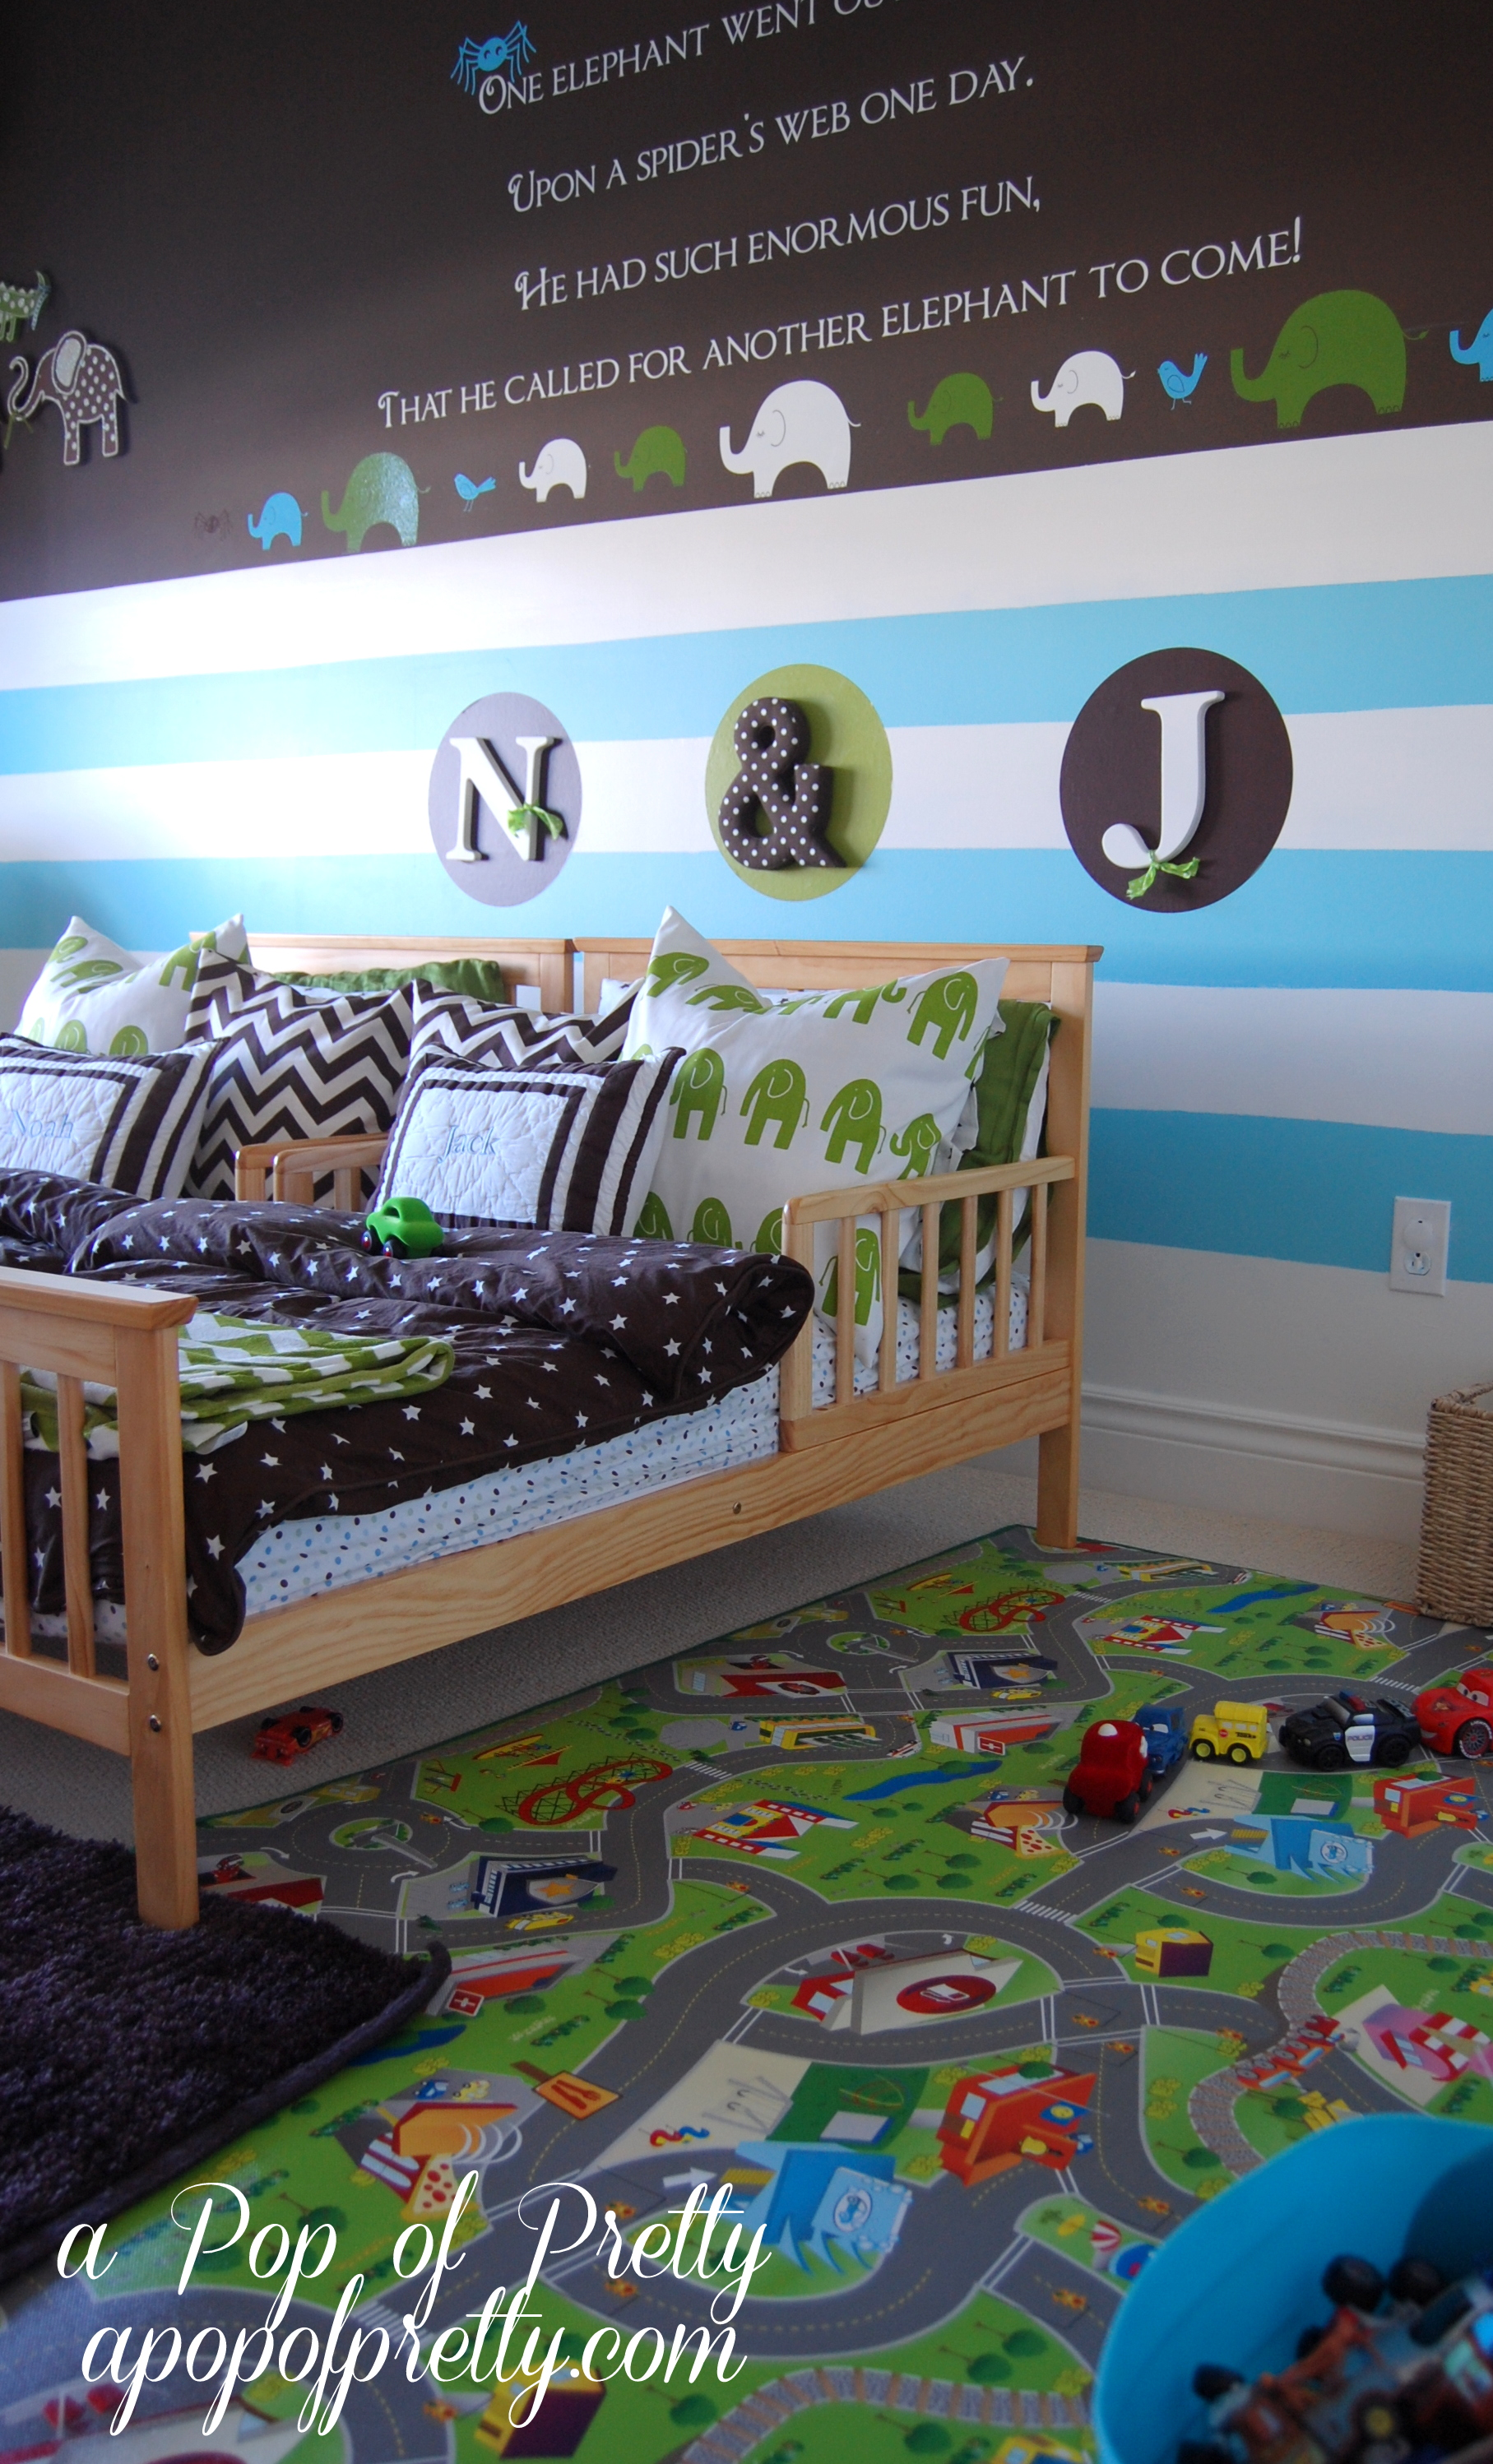 Toddler Boy Room Design: A Pop Of Pretty Blog (Canadian